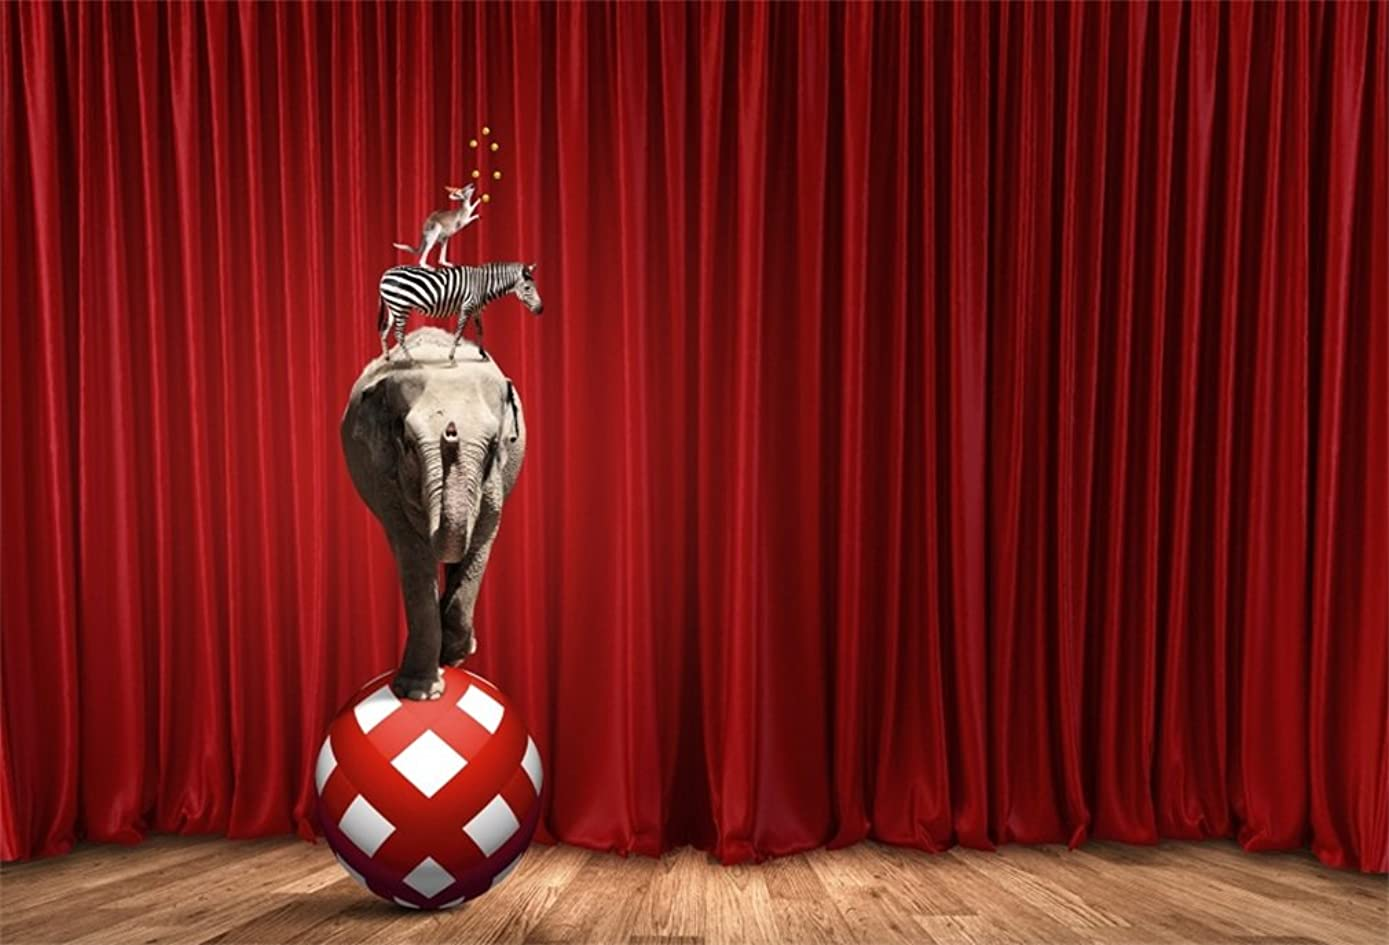 DaShan 5x3ft Photography Backdrop Circus Red Ball Elephant Zebra Red Carpet Cintage Stripes Wood Floor Photo Background Backdrops Photography Video Party Kids Personal Portrait Photo Studio Props